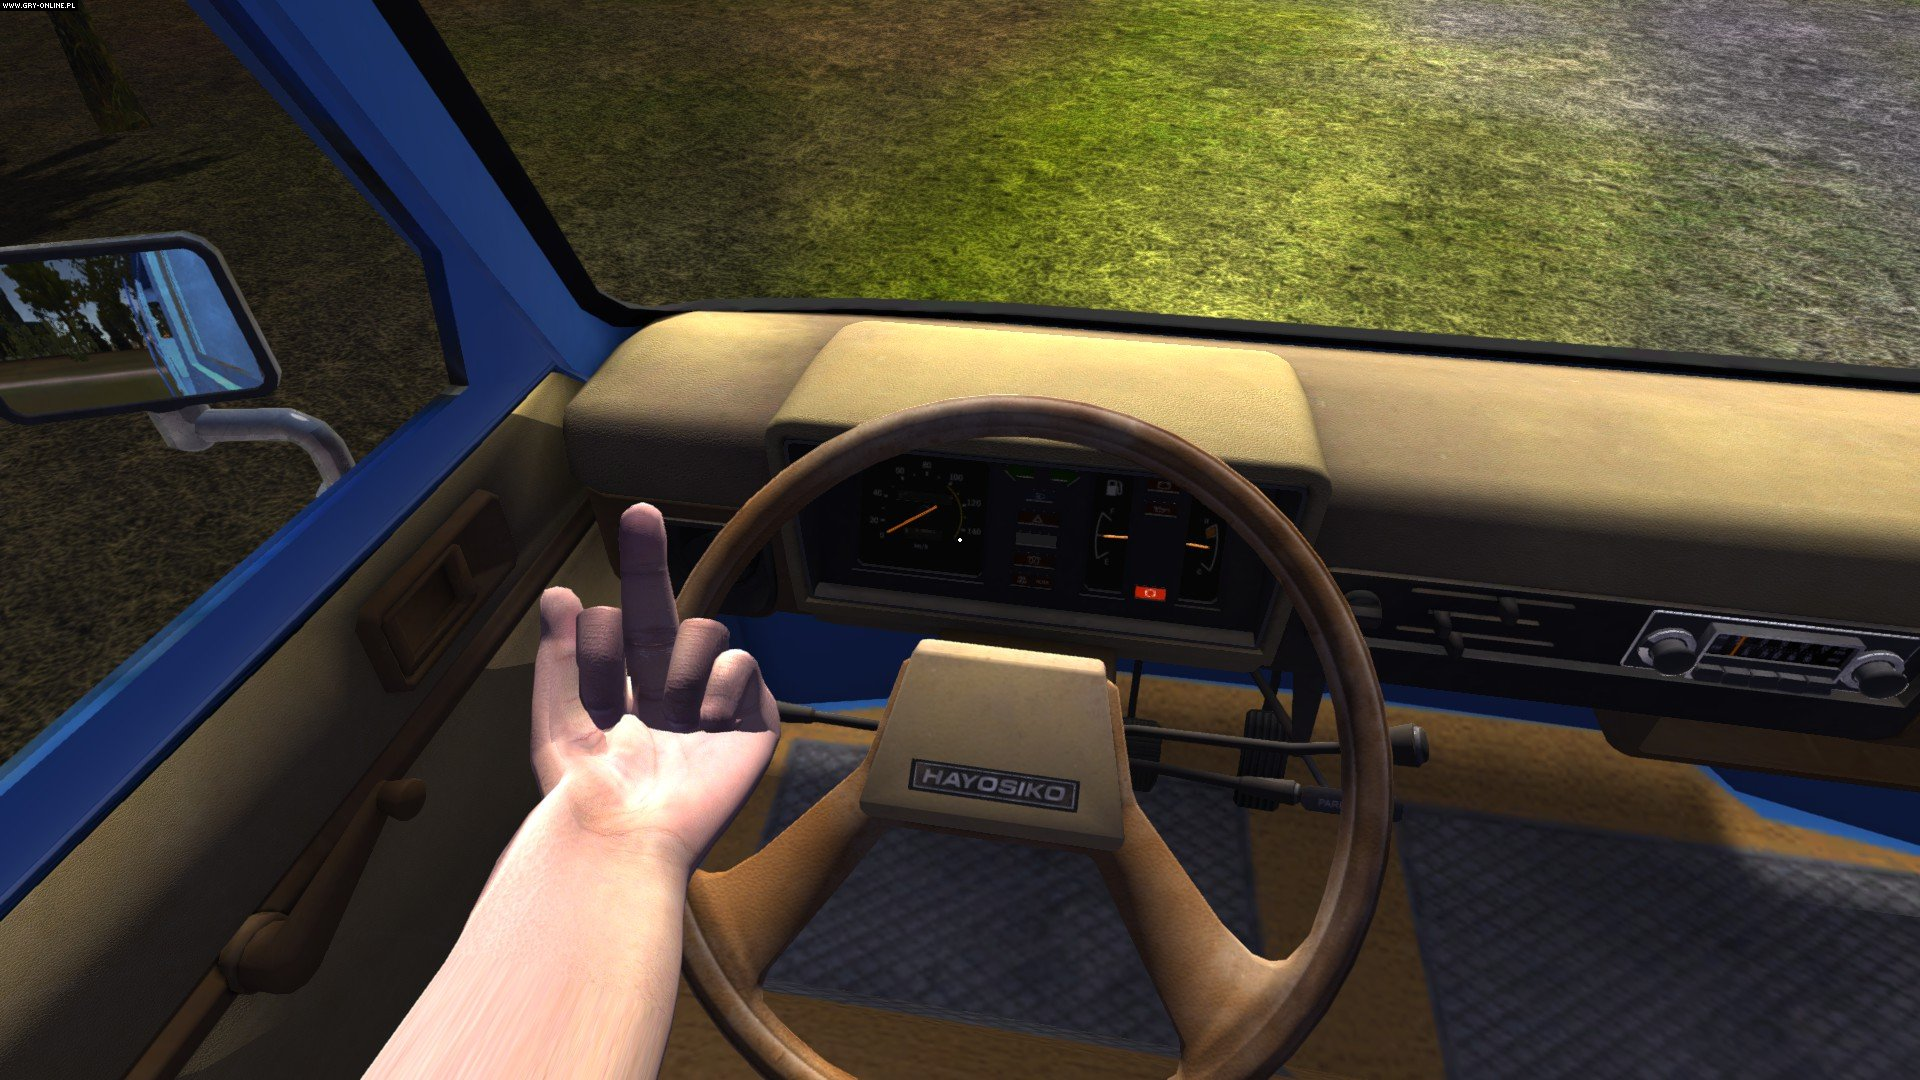 My Summer Car Download For Free Pc Www X Gamex Com